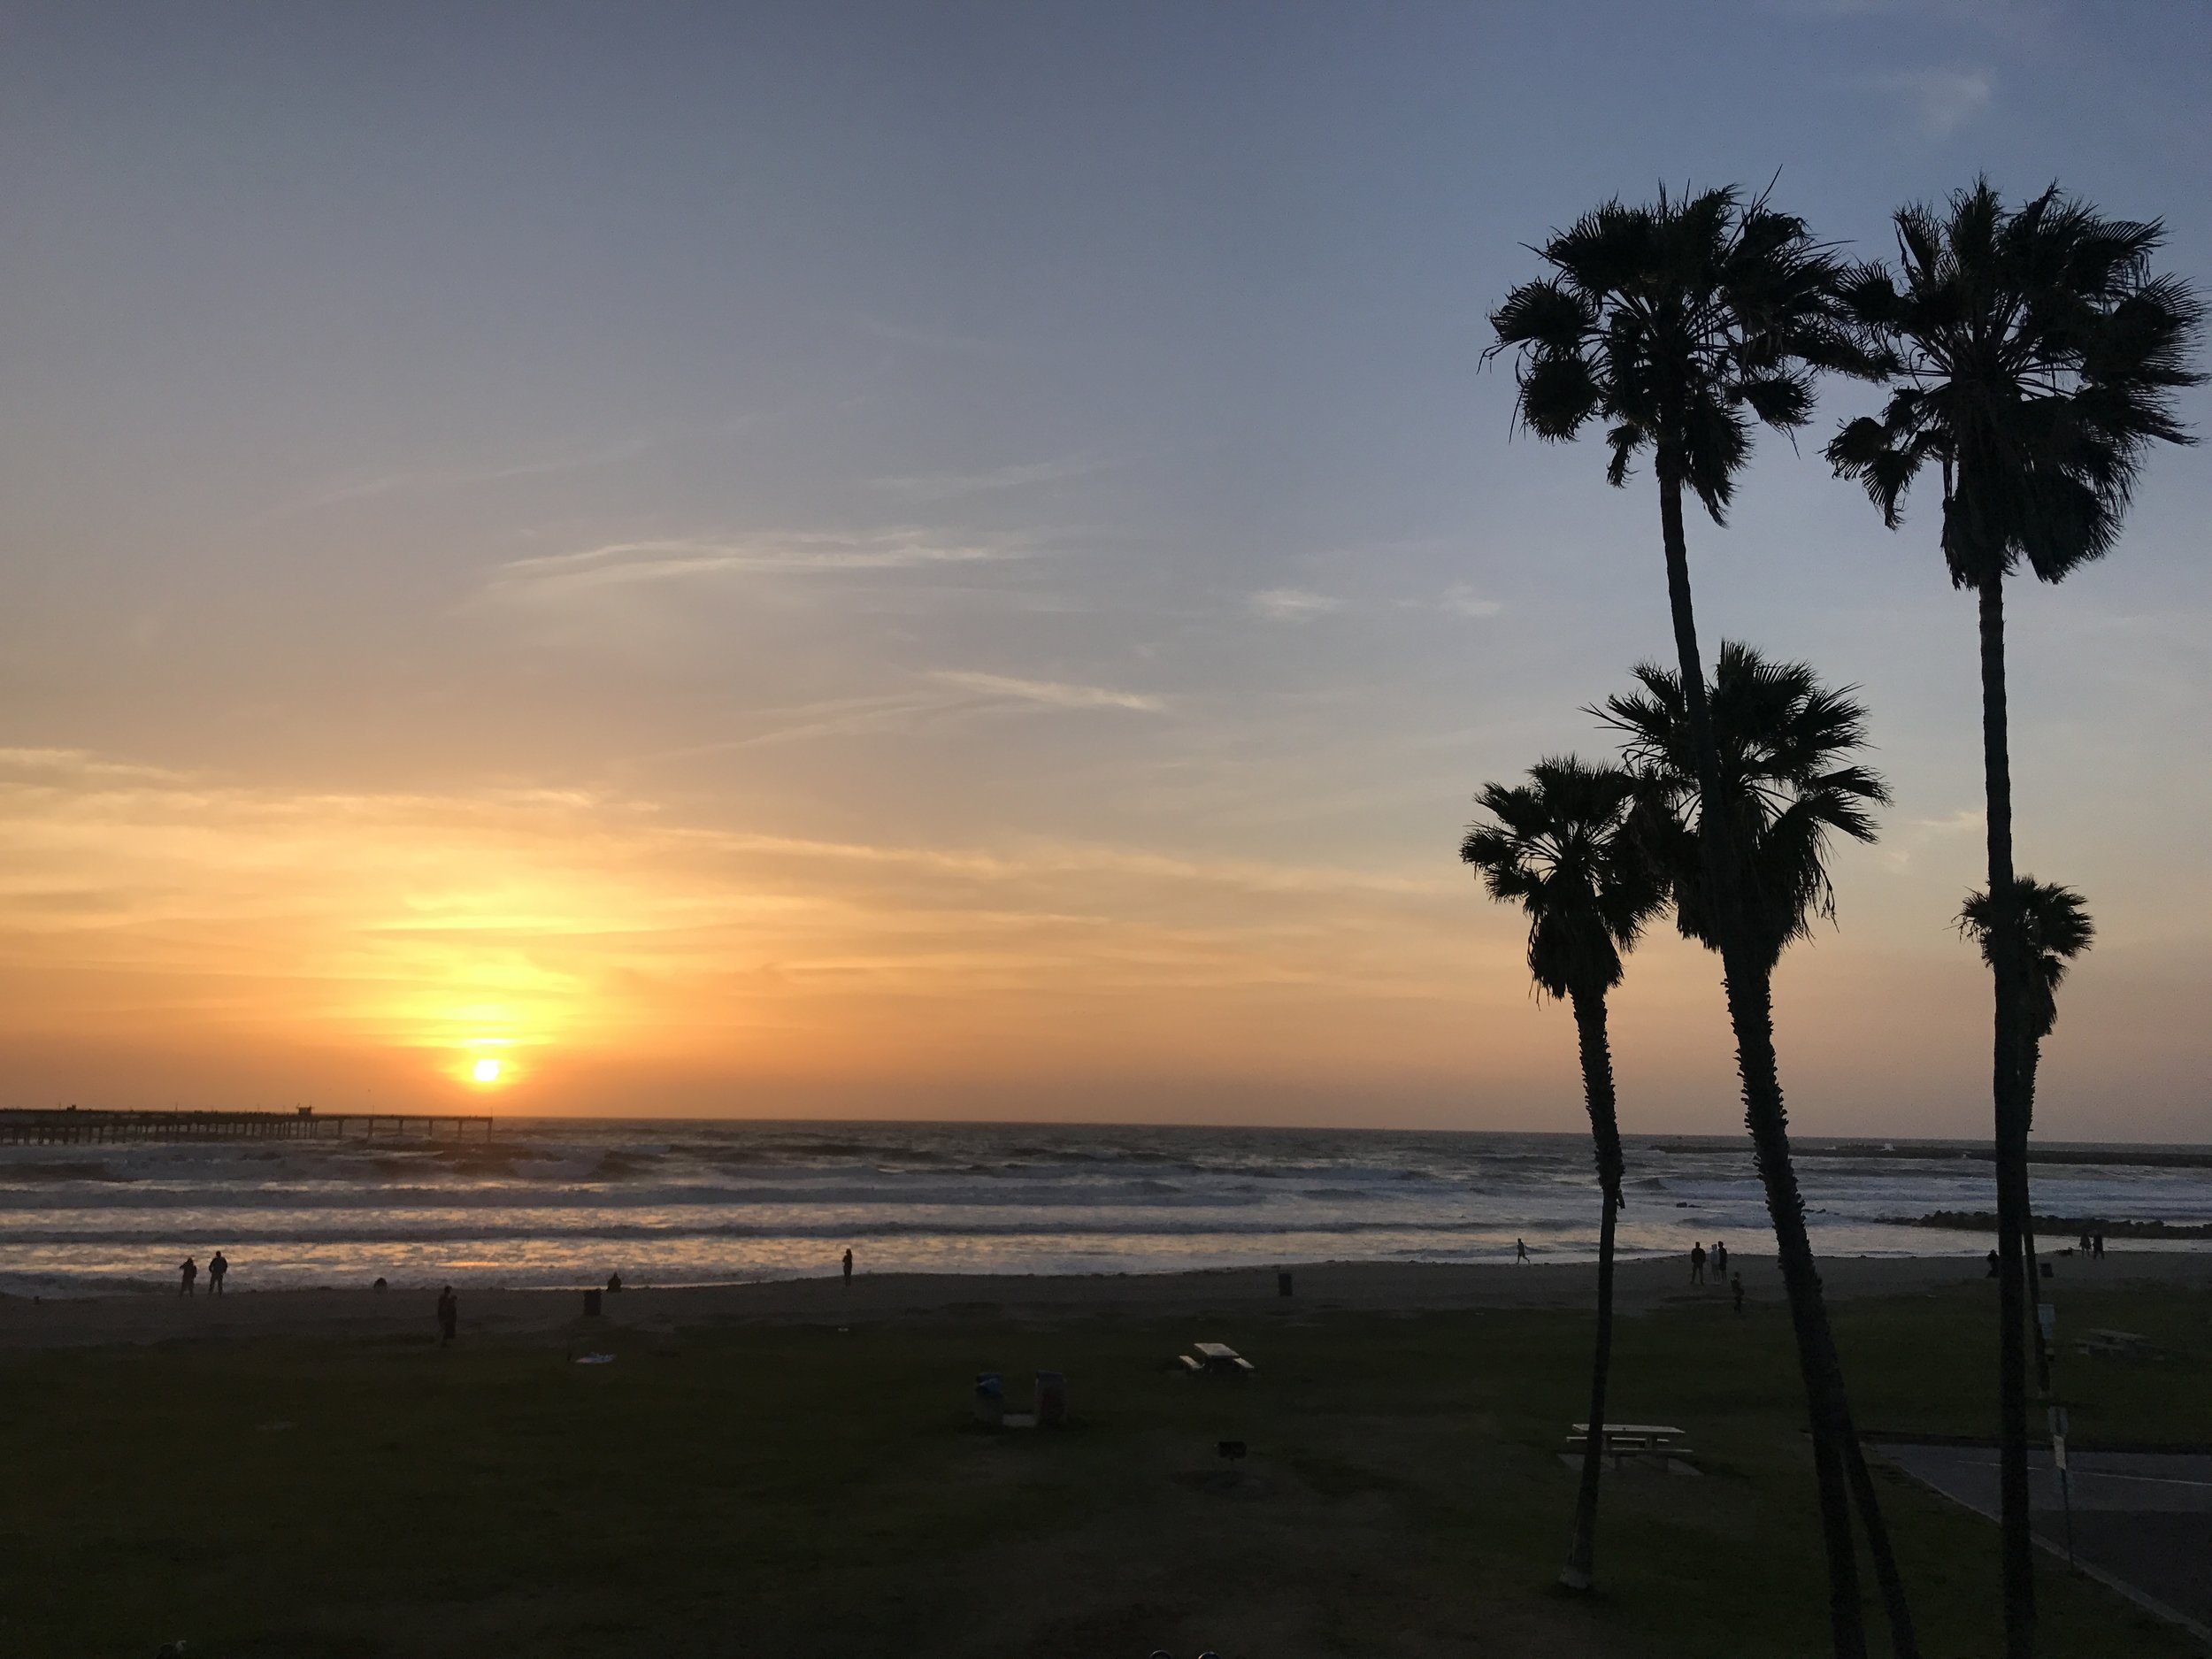 Missed those California sunsets. :)